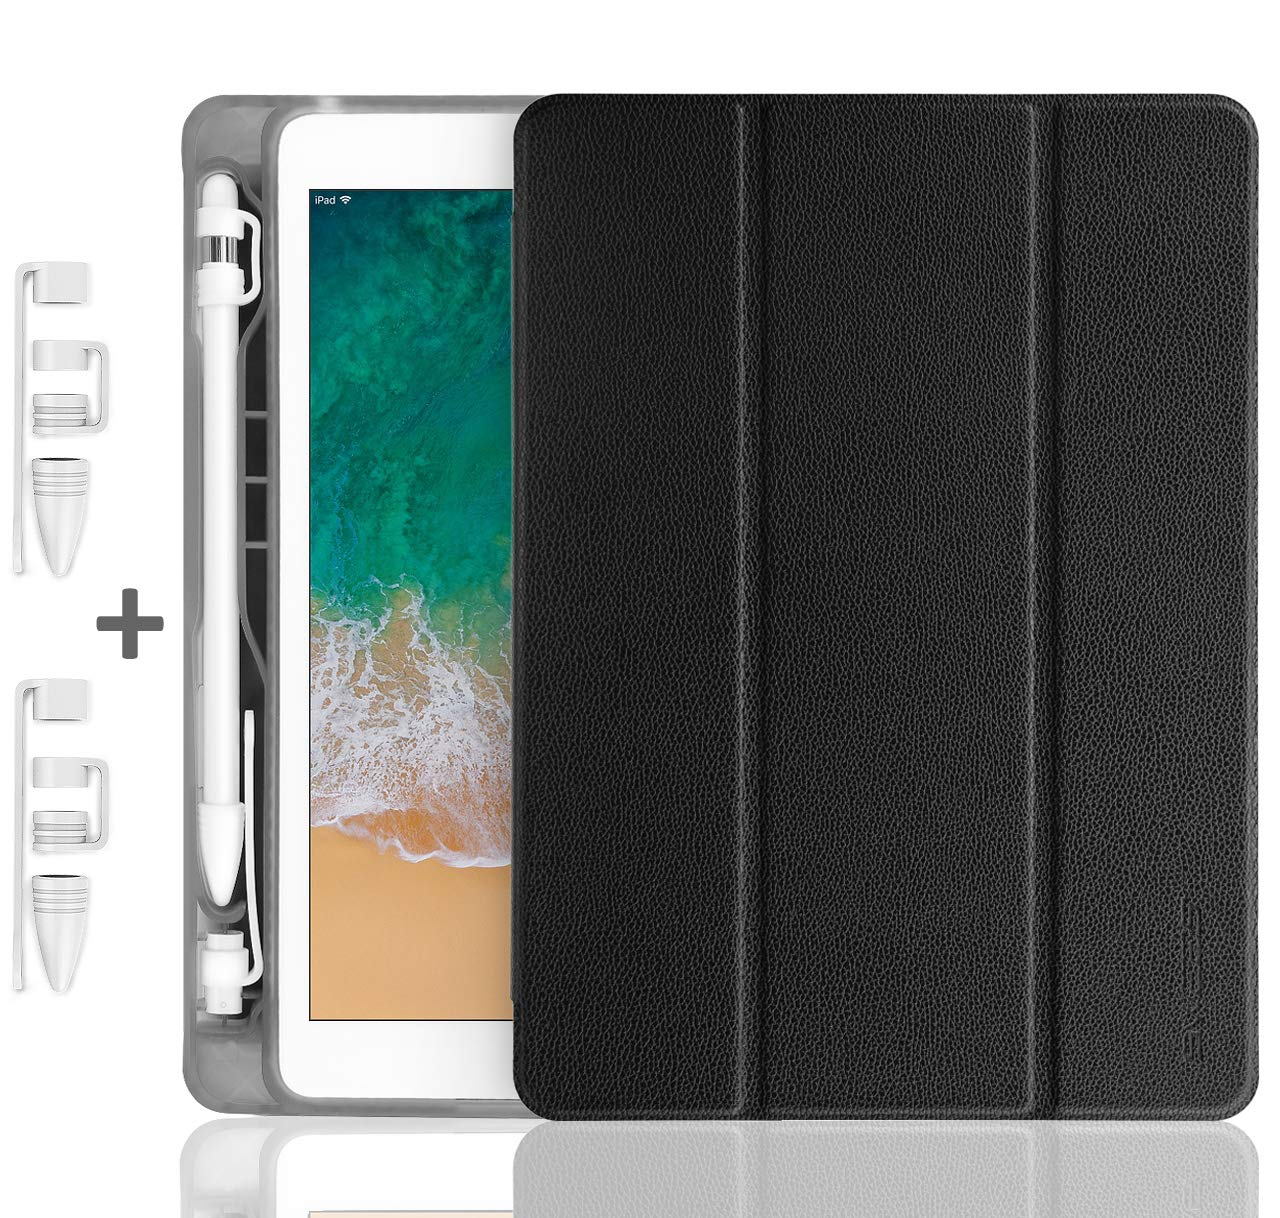 SWEES Compatible iPad 9.7 2018/2017 Case with Pencil Holder, Shockproof Durable Leather Smart Cover Auto Sleep/Wake with Apple Pencil Cap Holder Compatible iPad 9.7 inch 6th/5th Generation, Black